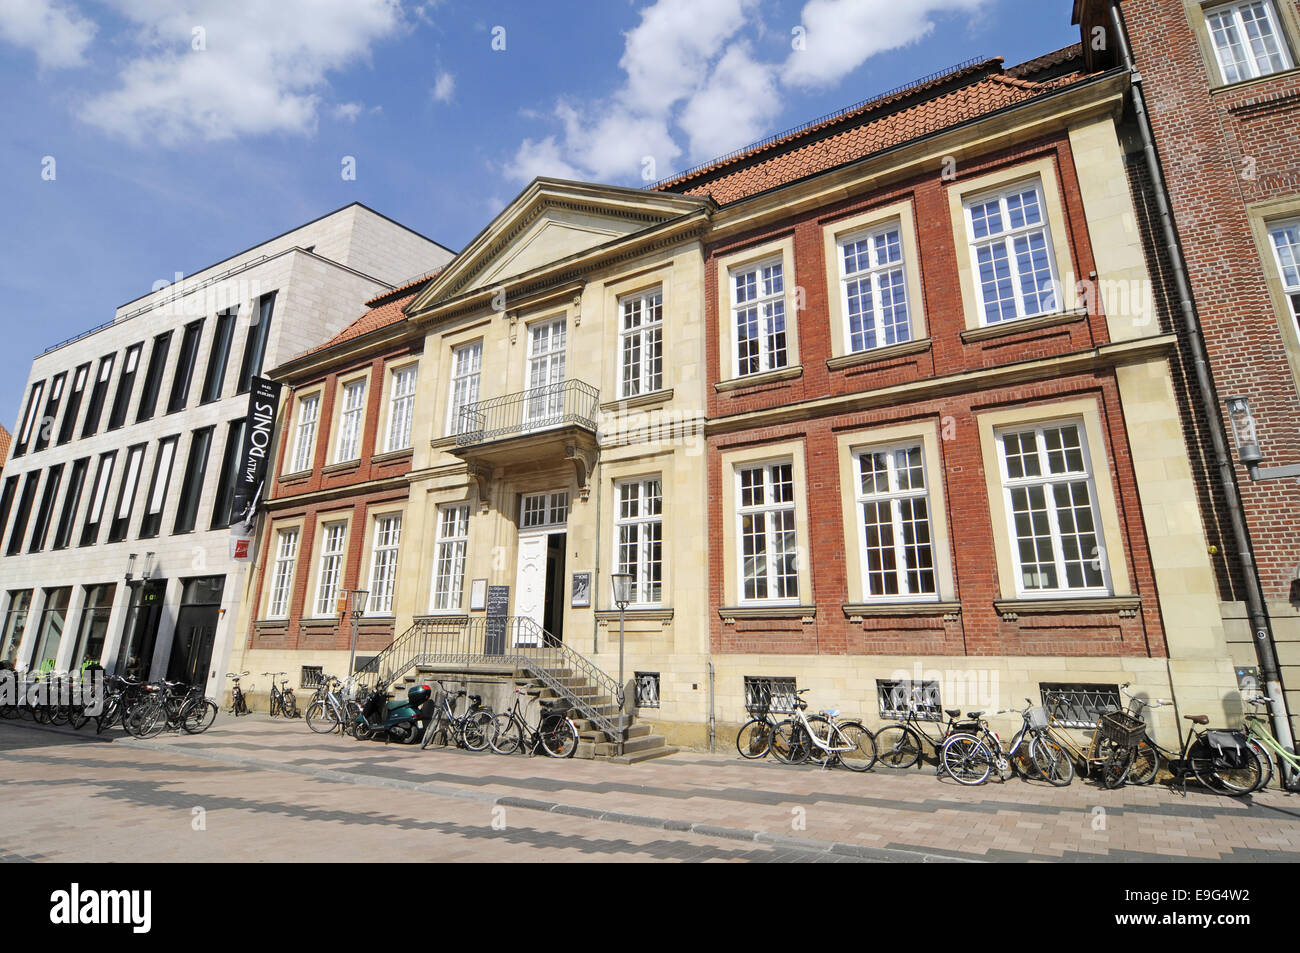 Picasso museum, Muenster, Germany Stock Photo